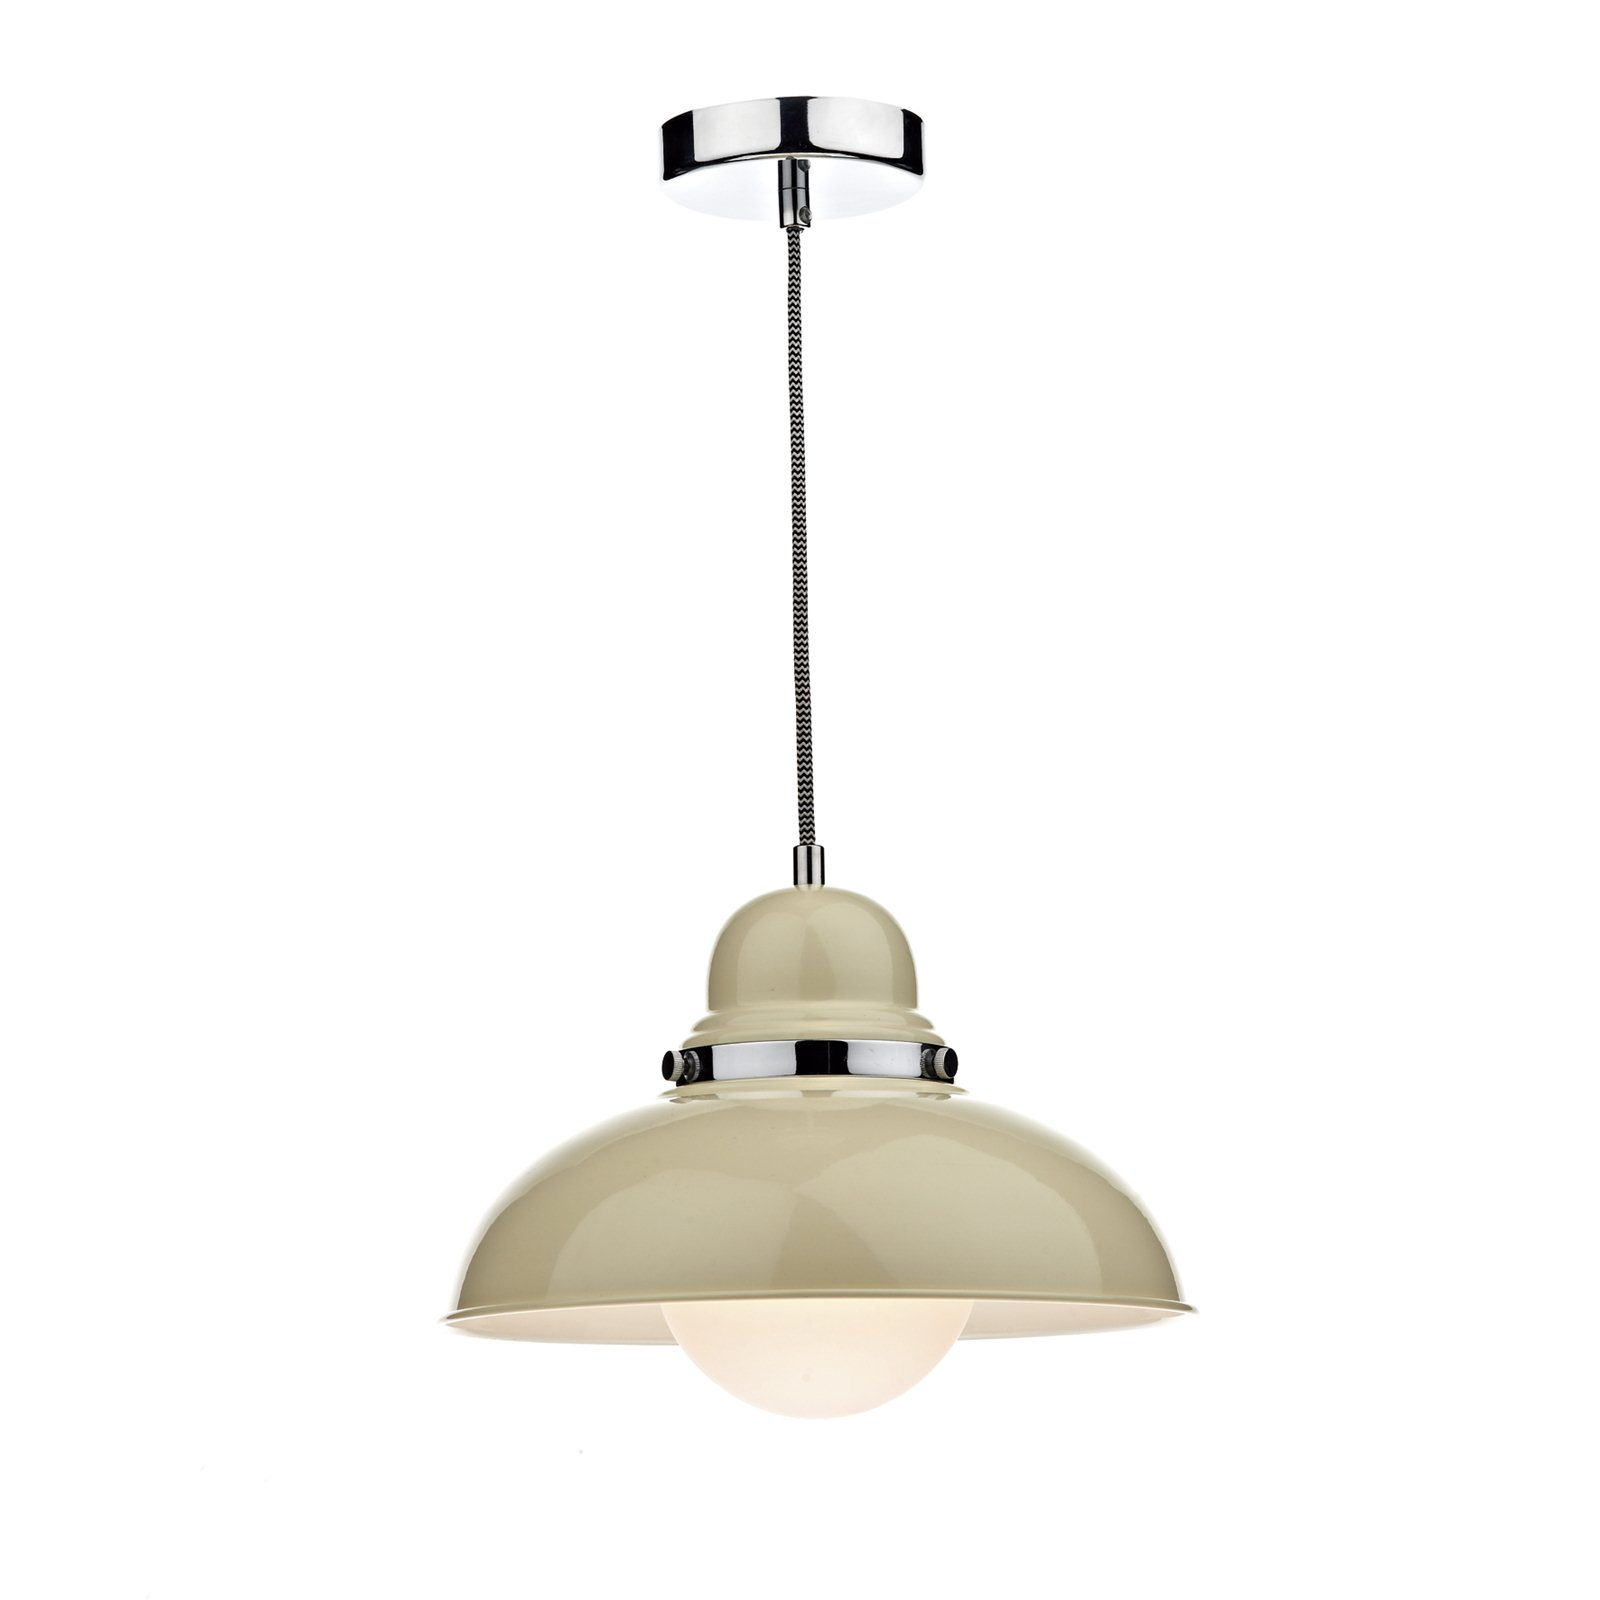 Hicks And Hicks Dynamic Kitchen Pendant Light Cream